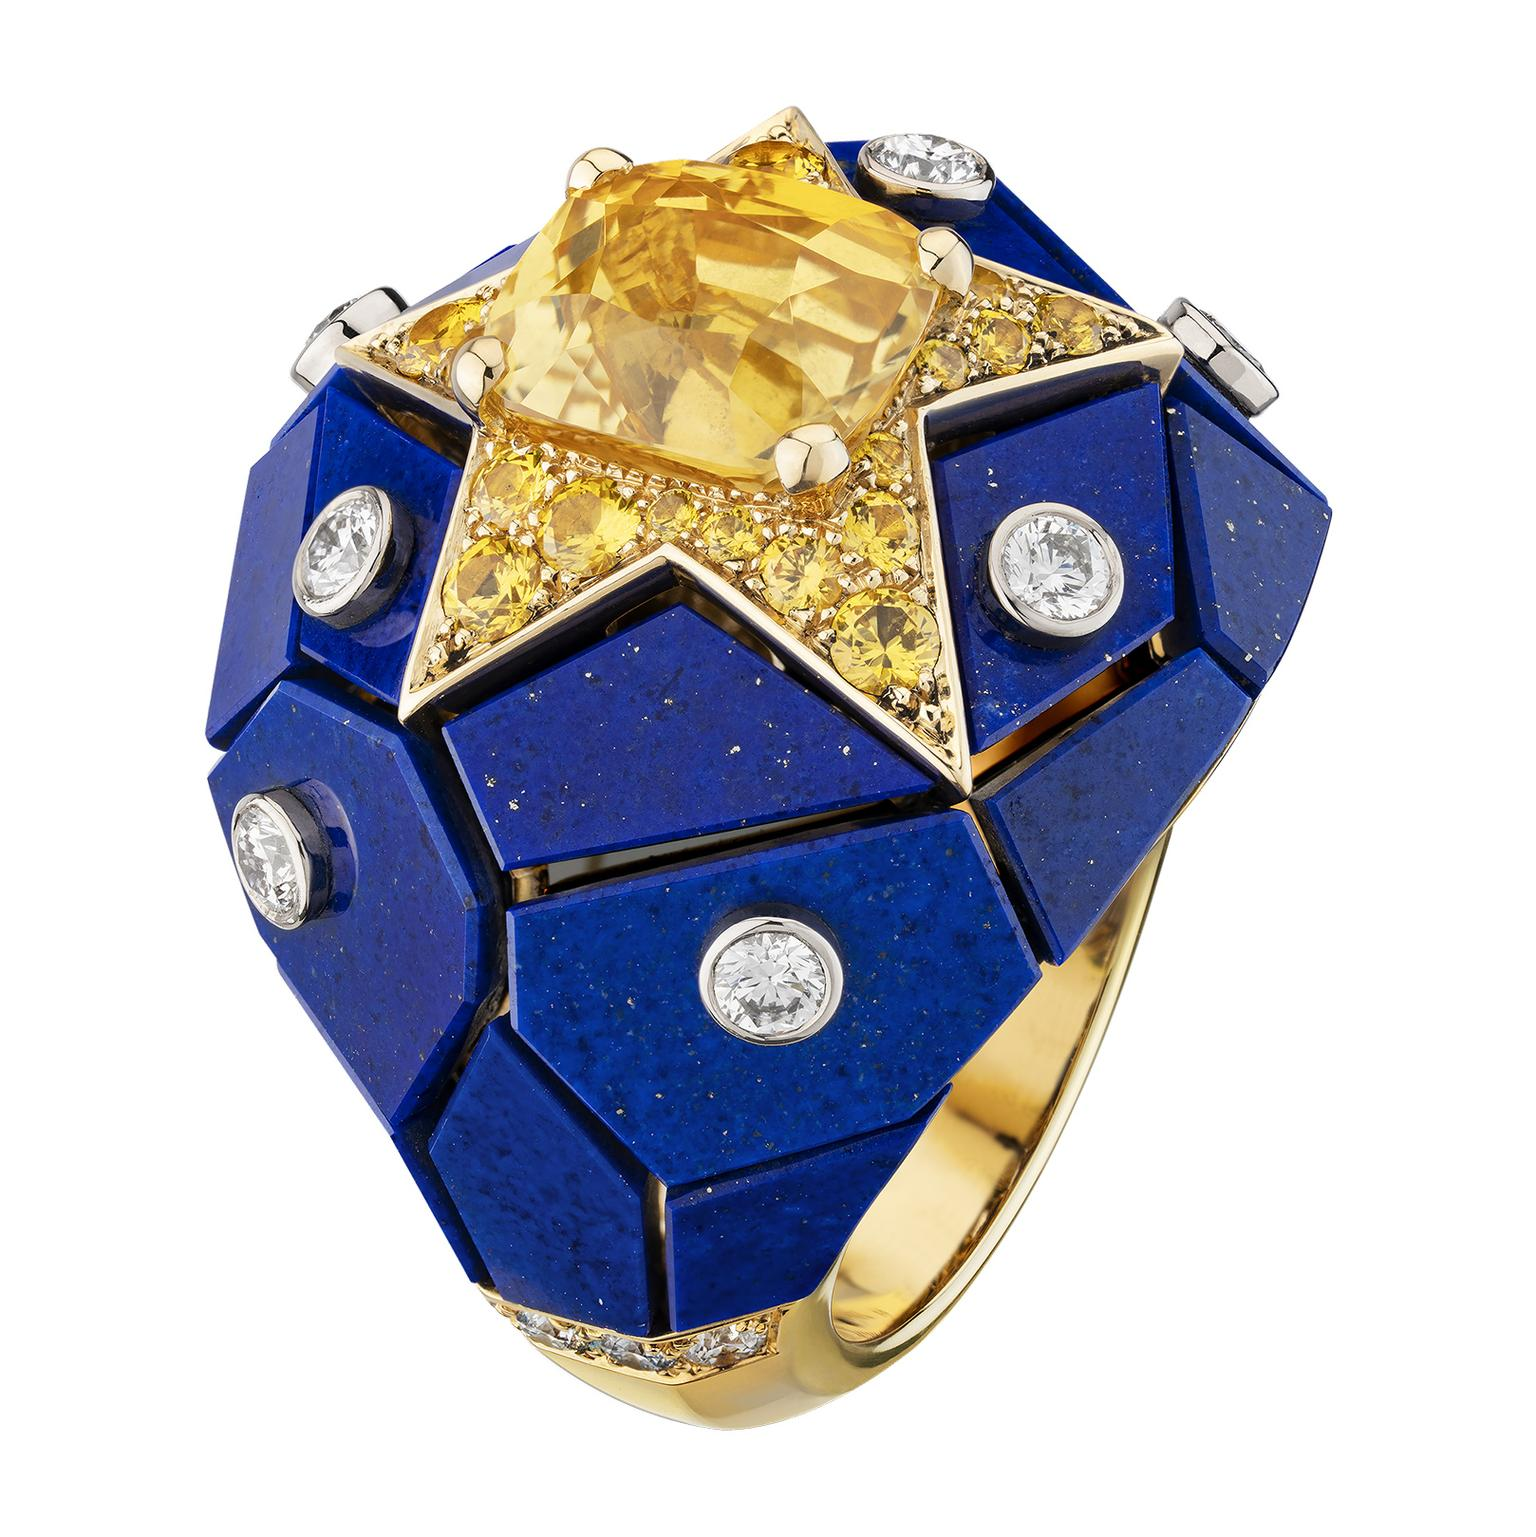 Constellation Astrale ring by Chanel